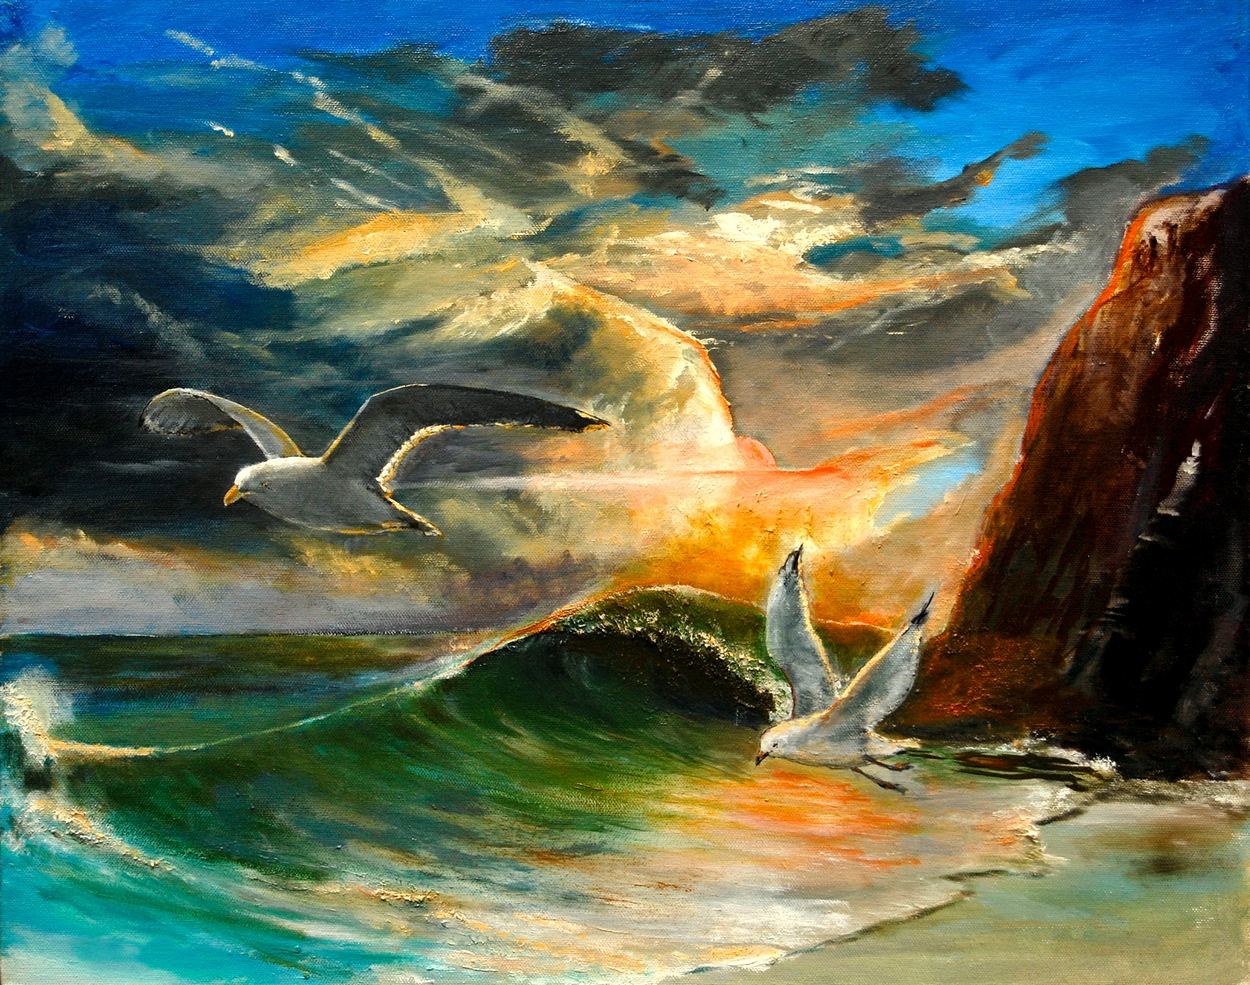 after-the-storm-sunset-seagulls-by-patrick-rahming